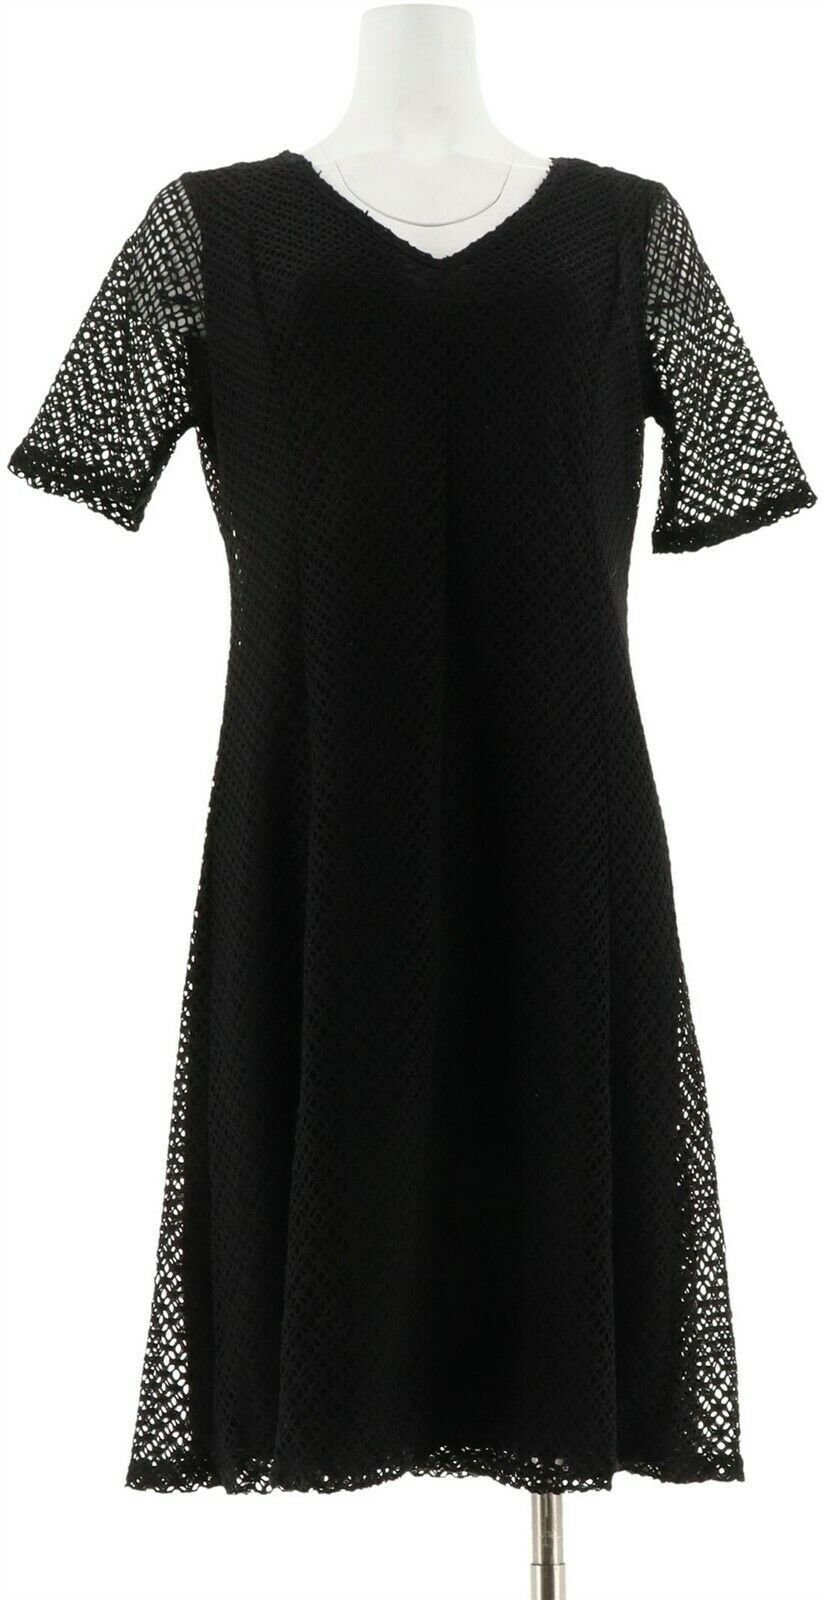 Primary image for Liz Lange Crochet Easy Fit Flare Dress V-Neck Short Sleeves BLACK S NEW 530-753